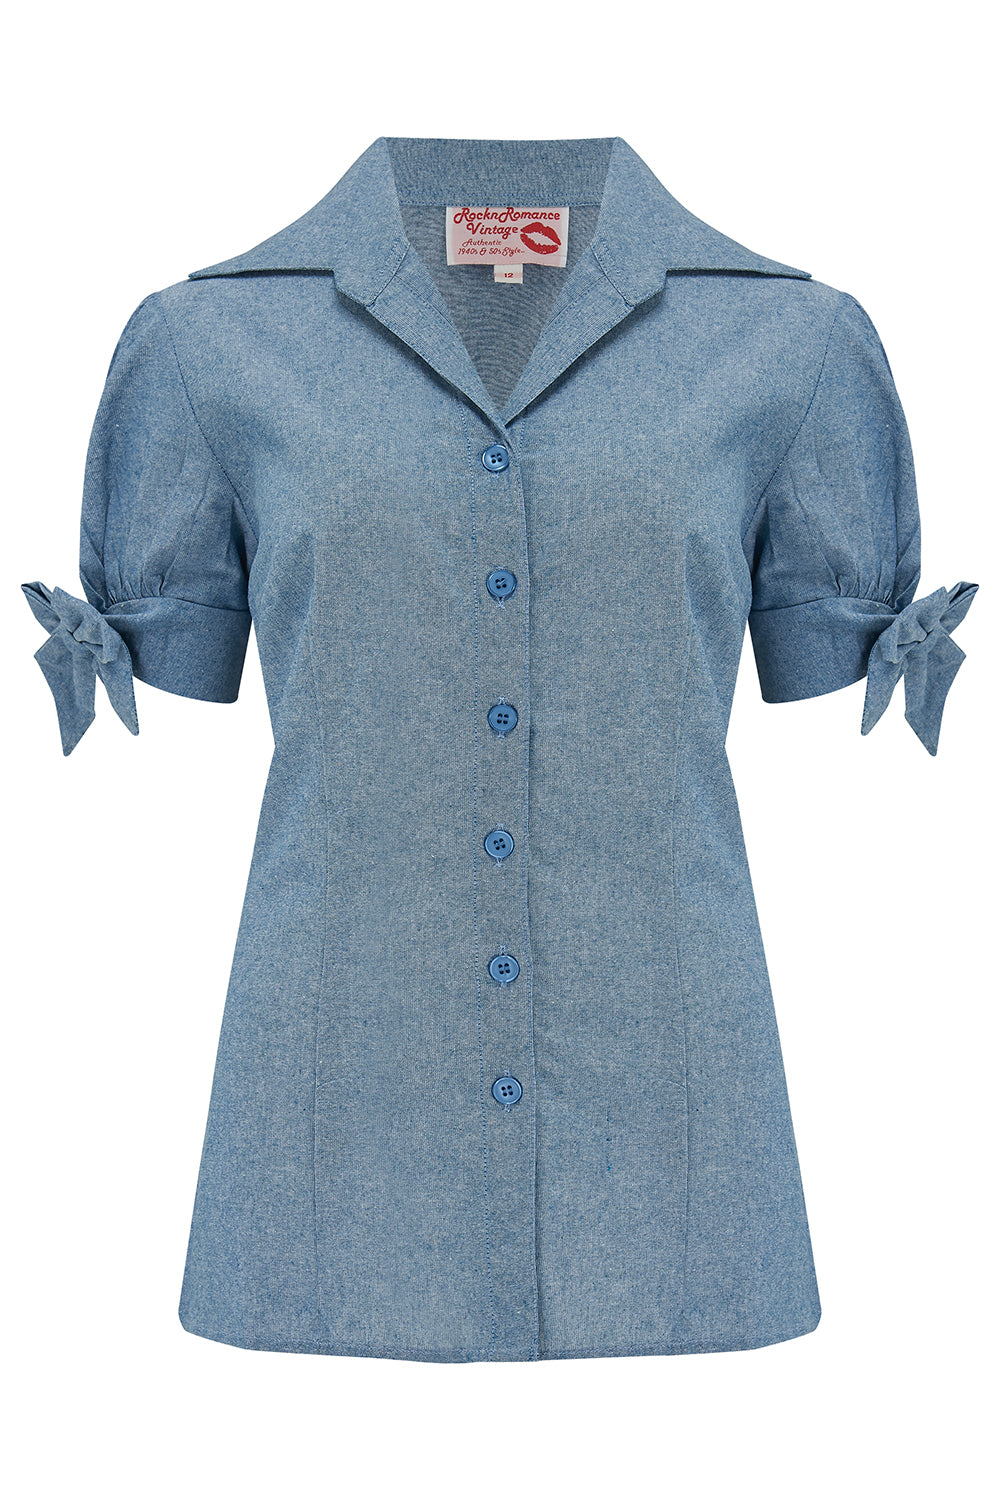 "Pre-Order.. The ""Jane"" Blouse in Lightweight Blue Denim, Cotton Chambray, True & Authentic 1950s Vintage Style - RocknRomance True 1940s & 1950s Vintage Style"